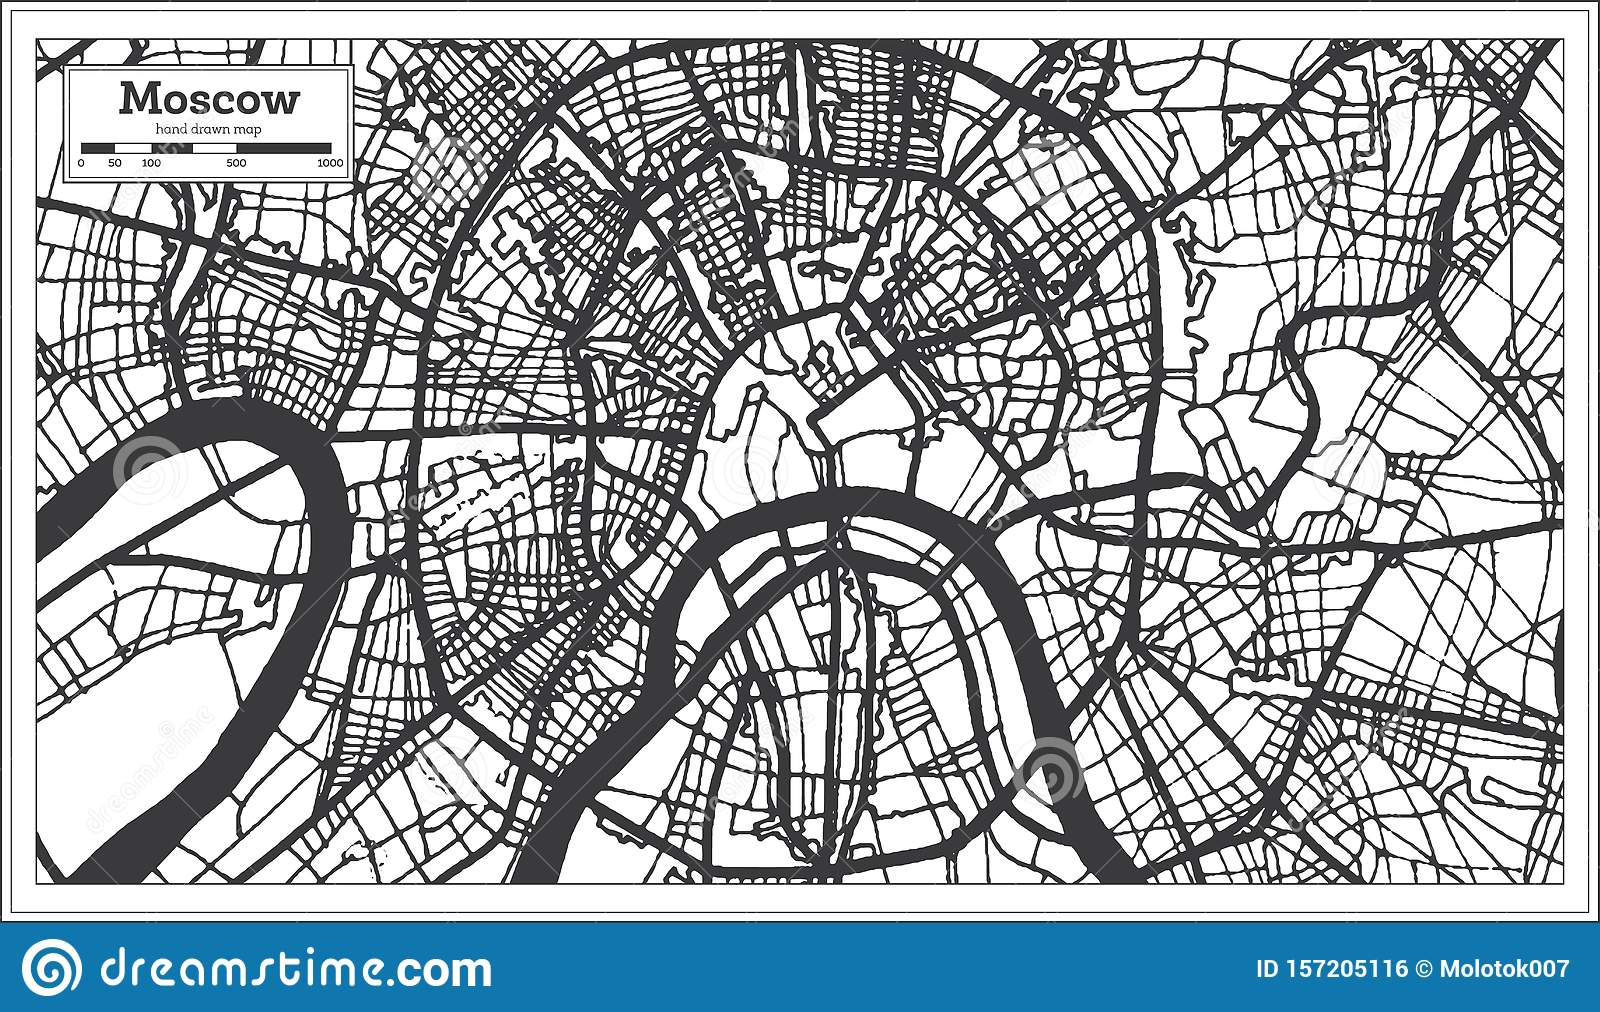 Lovely Moscow city Vector | Premium Download |Moscow City Coloring